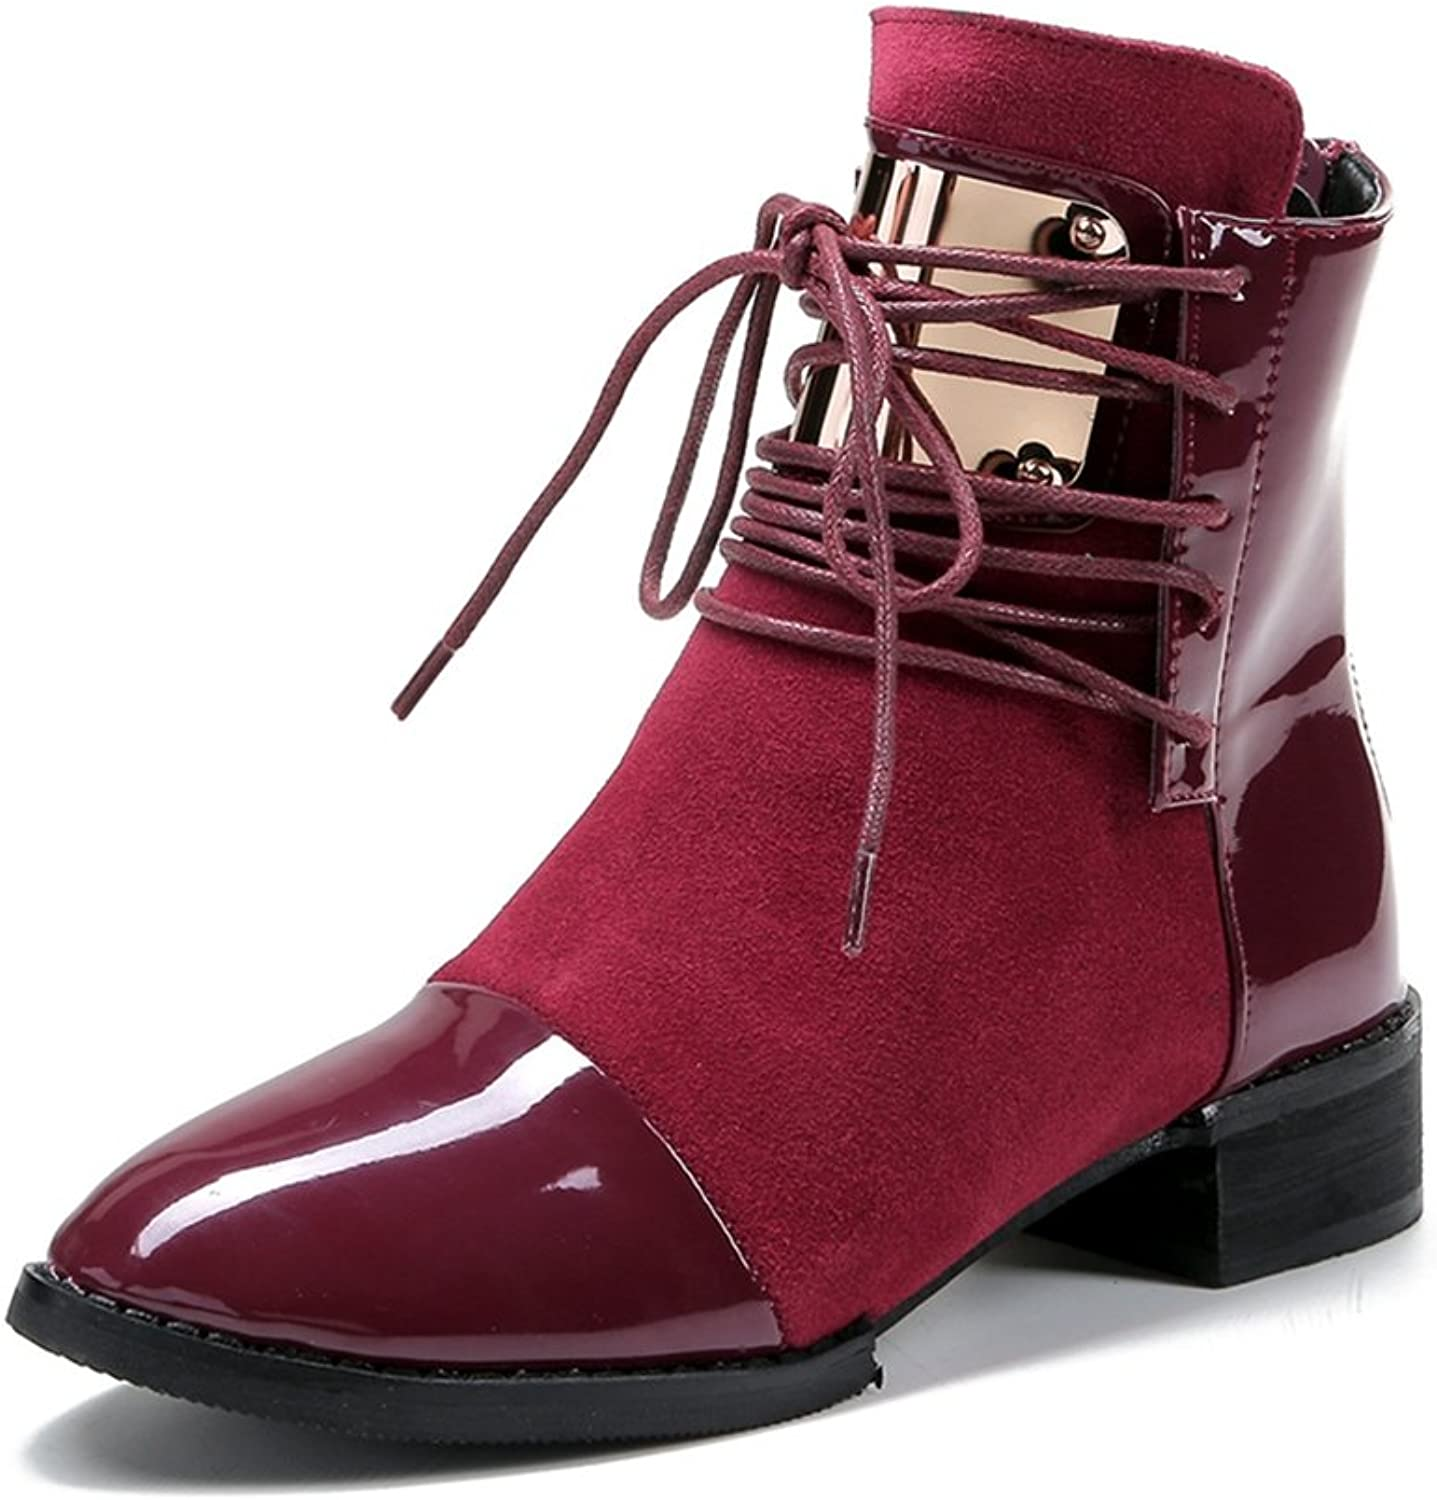 Btrada Women Winter Fur Lined Ankle Booties Mid Chunky Heel Sheet Metal Lace-up Fashion Short shoes